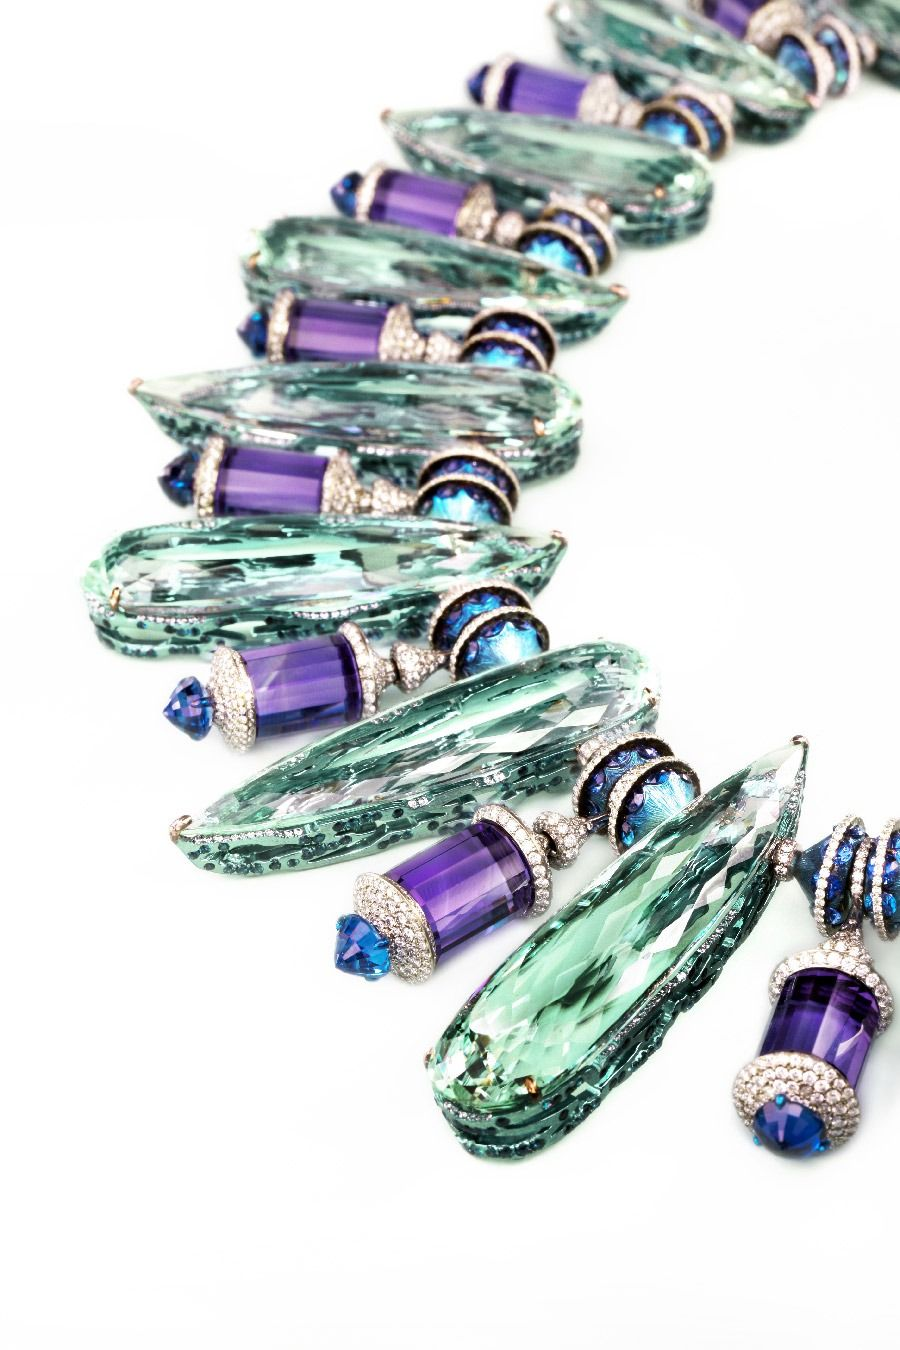 Wallace Chan Necklace of aquamarine, sapphires, amethyst and diamonds set in titanium. The settings of the aquamarine deserve special note, they are titanium shells, anodized to match the color of the stones nearly exactly and set with tiny diamonds, giving them the appearance of just sticking to the outside of the large stone unsupported.